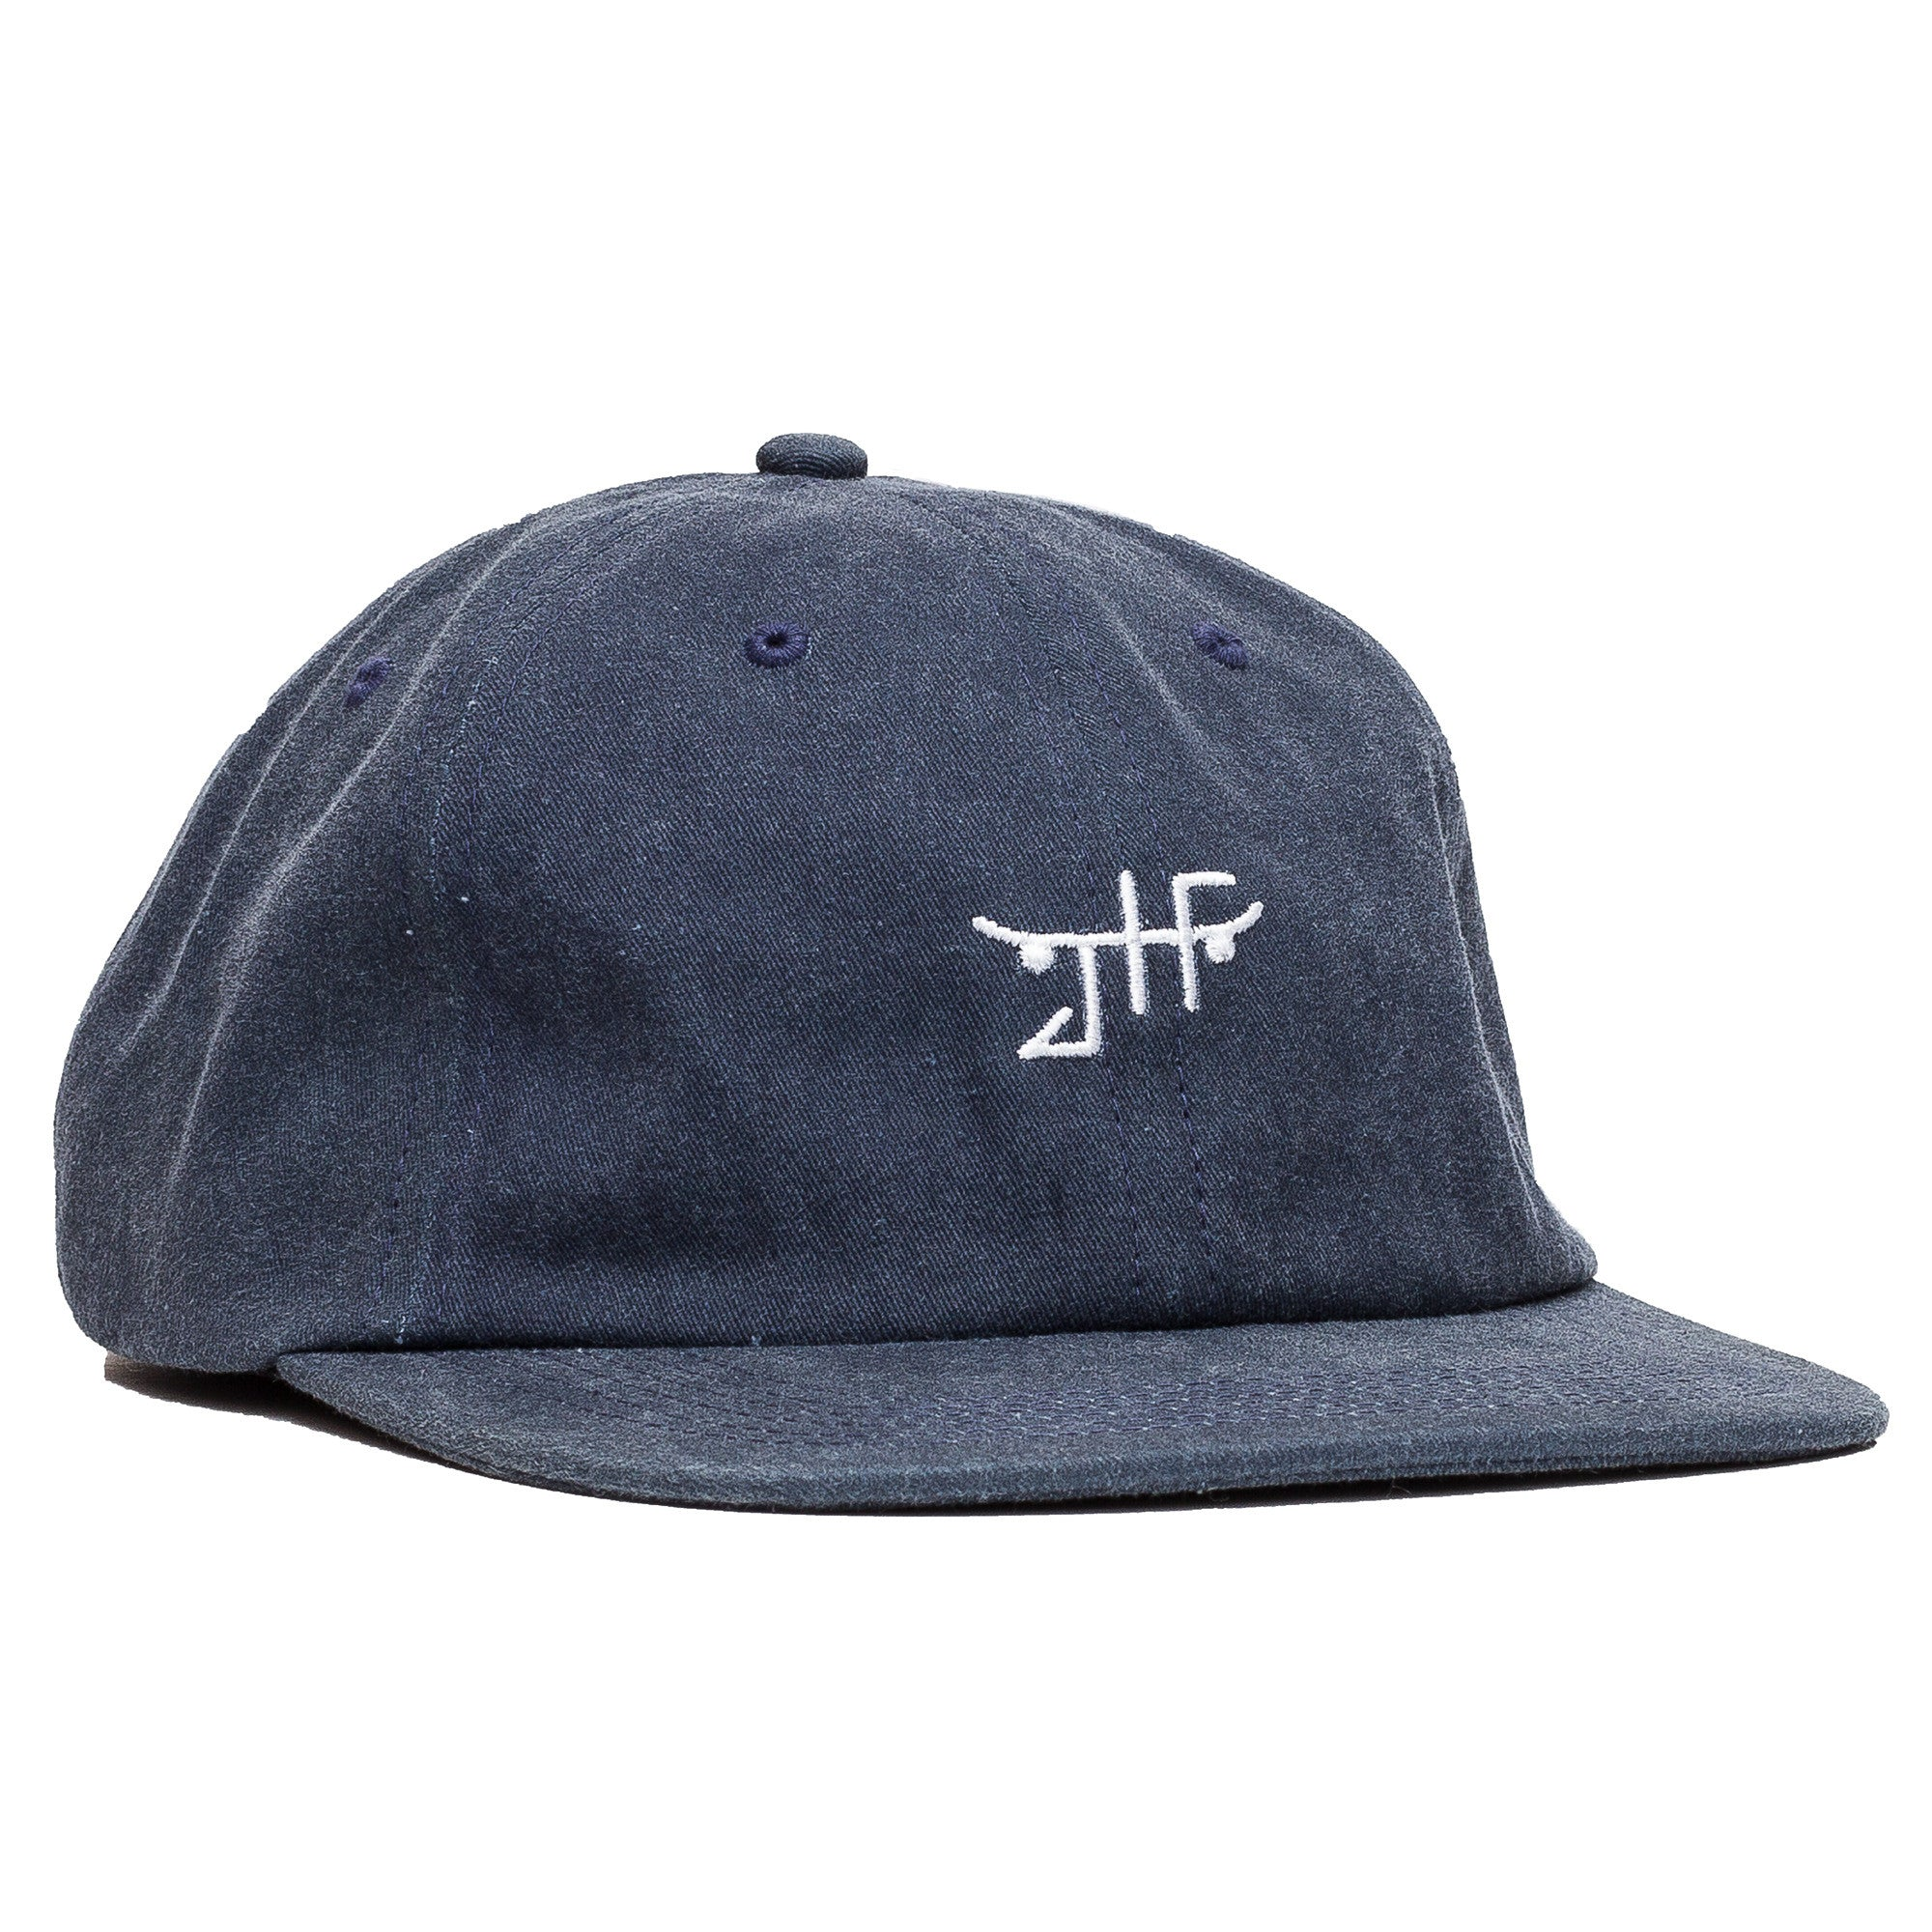 Unconstructed Strapback in Navy